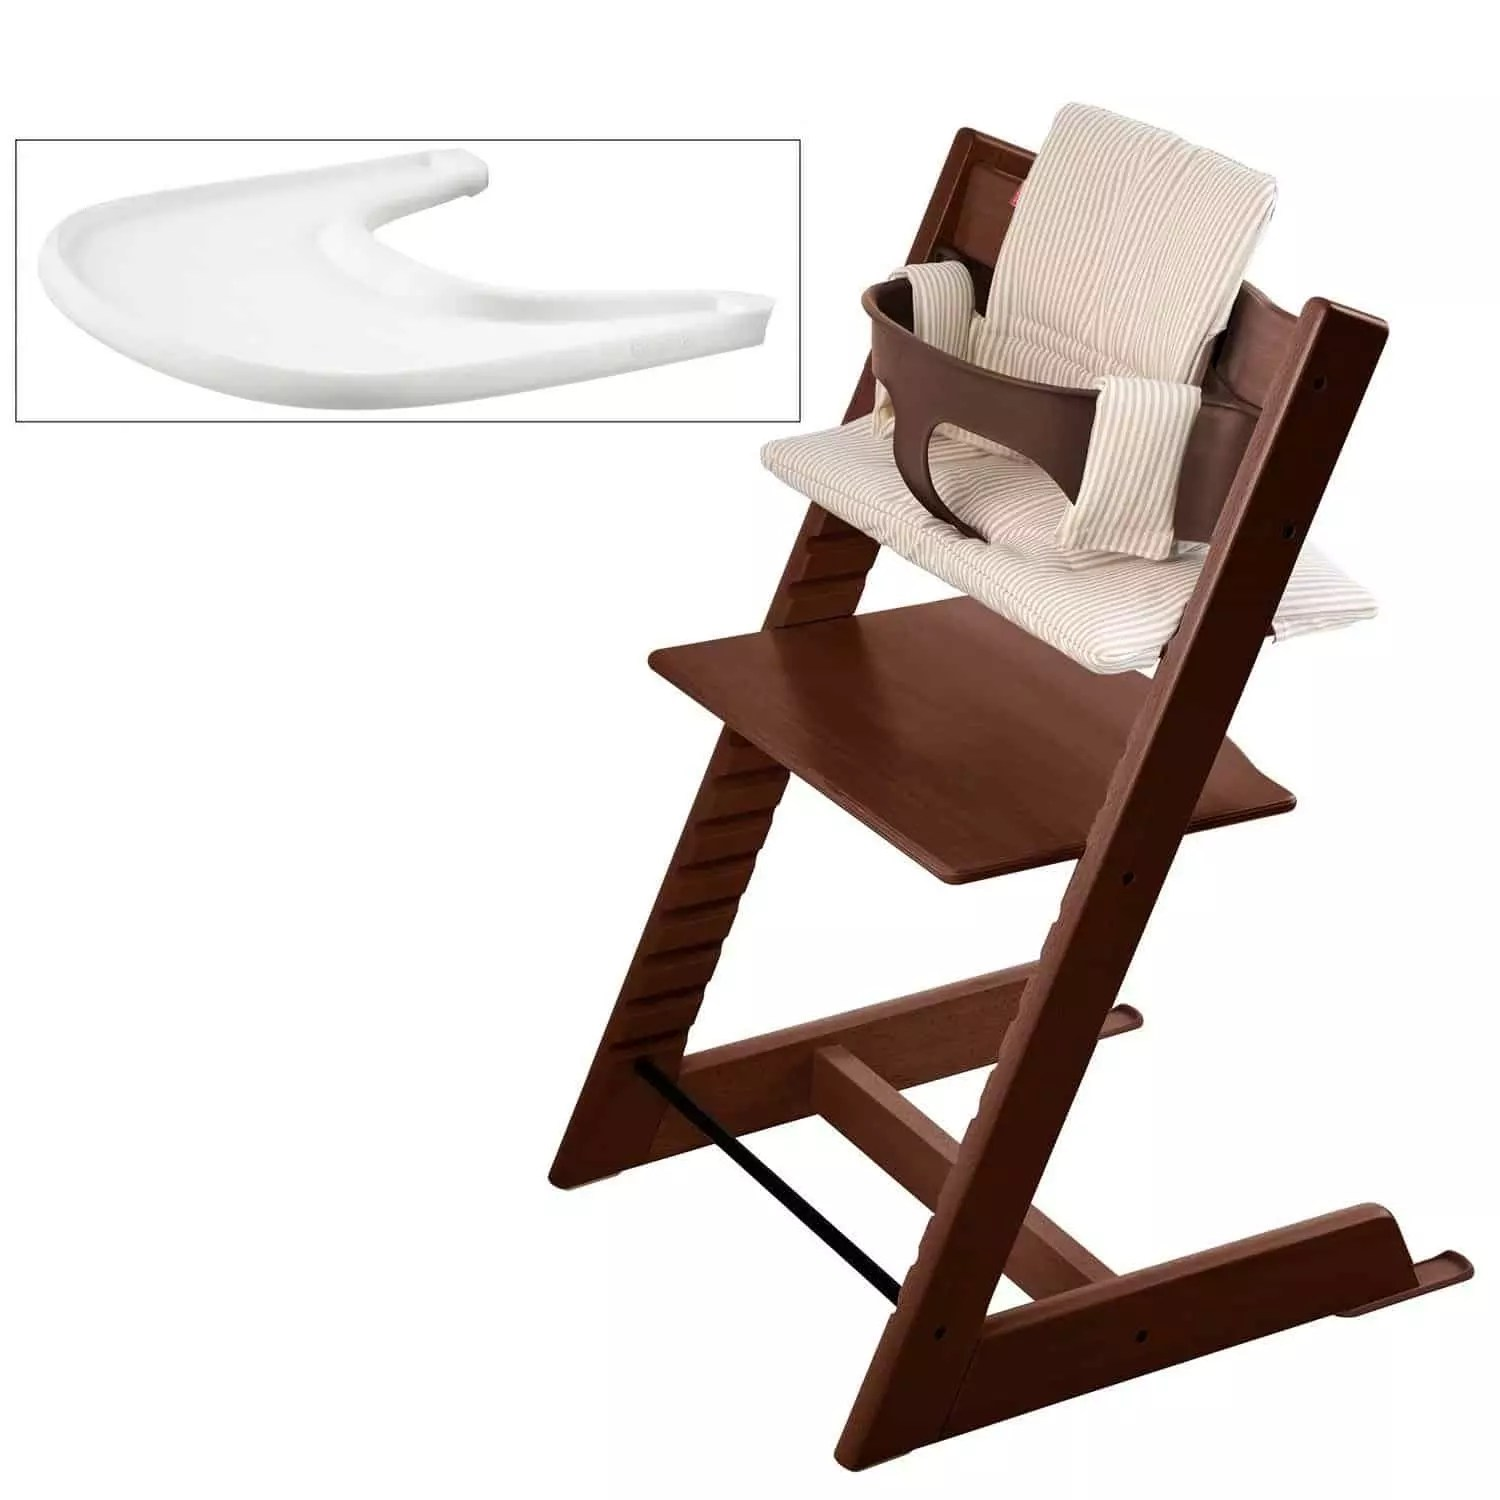 Stokke Newborn Seat Review High Chair Brand Review Stokke Tripp Trapp Baby Bargains